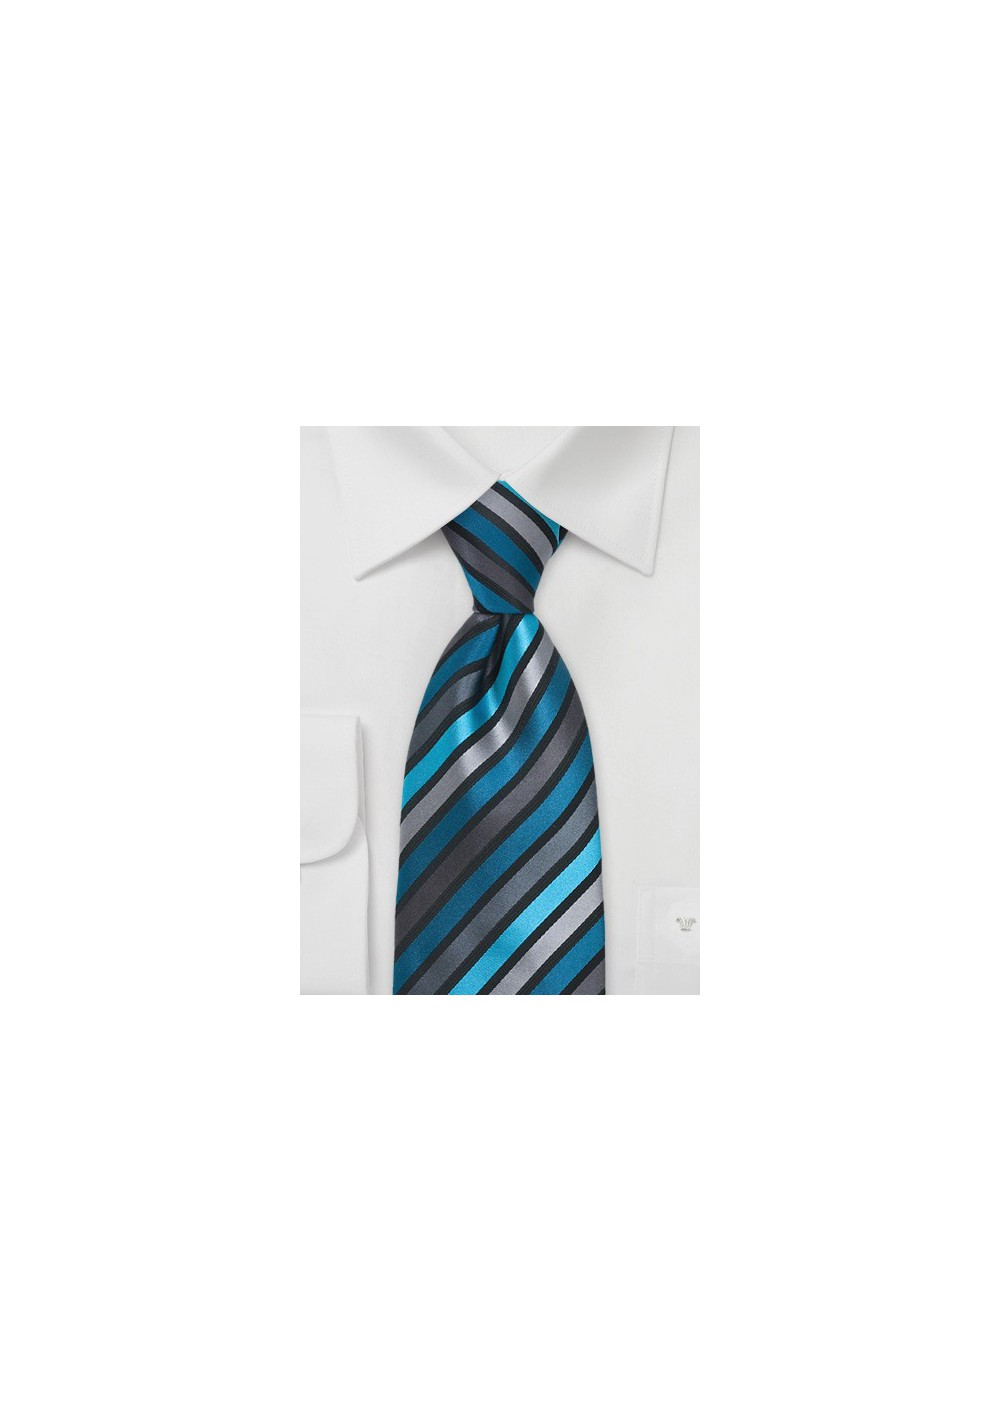 Teal, Aqua, and Gray Striped Tie